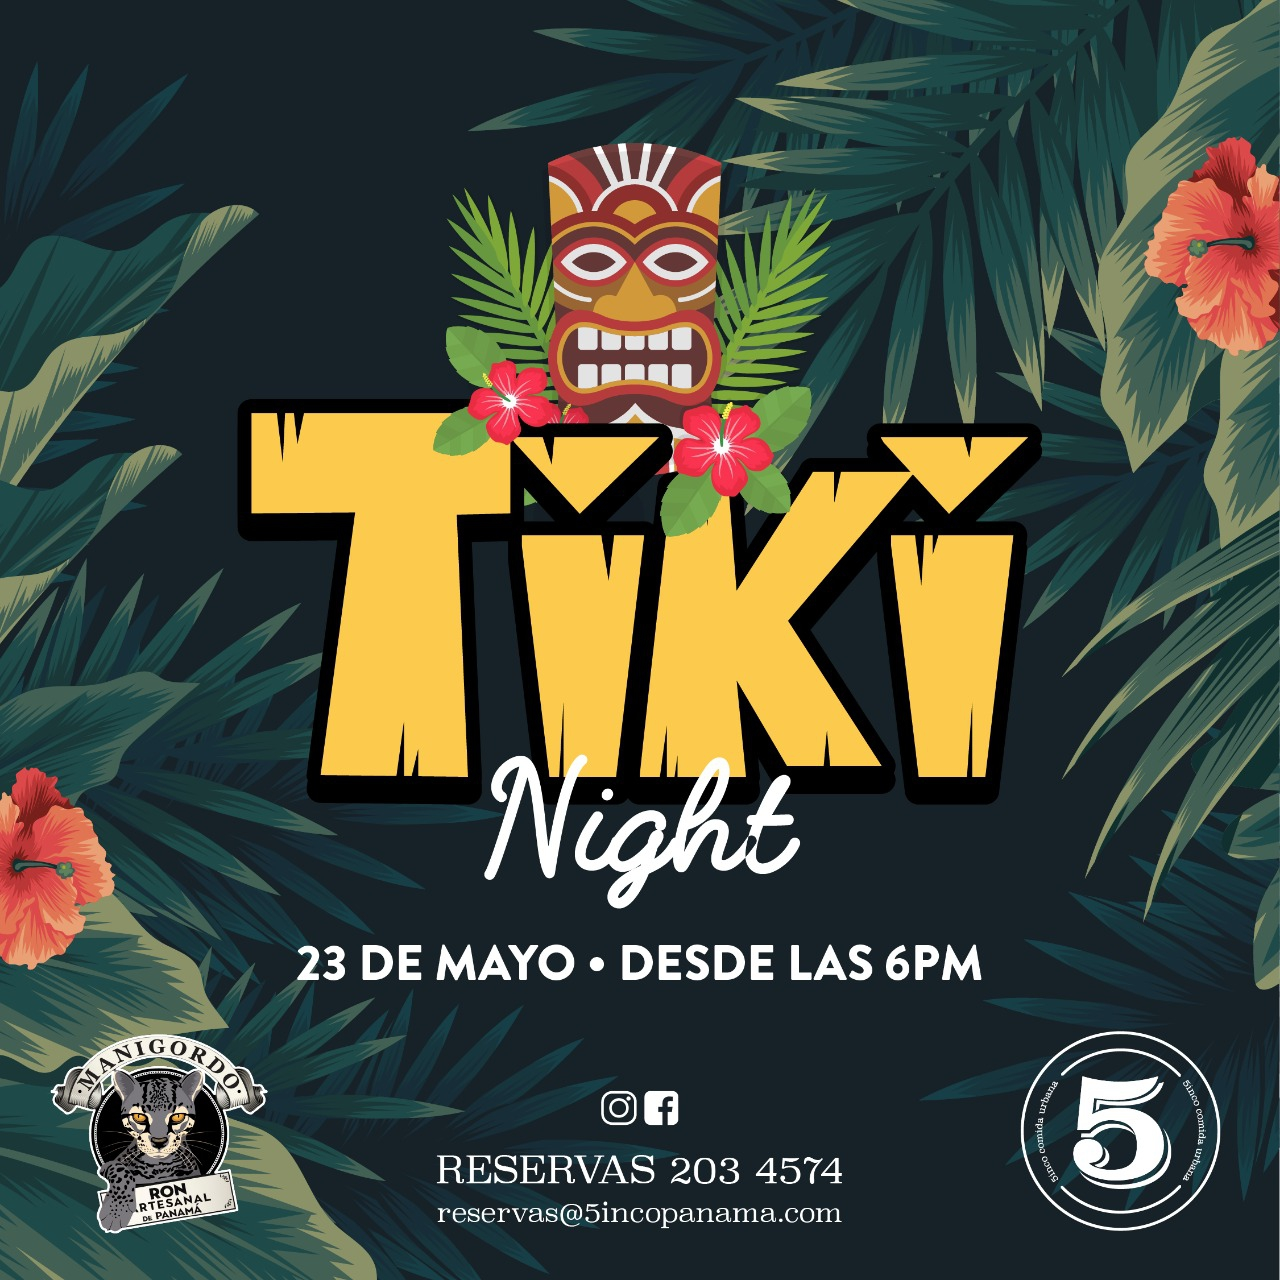 Tiki Night